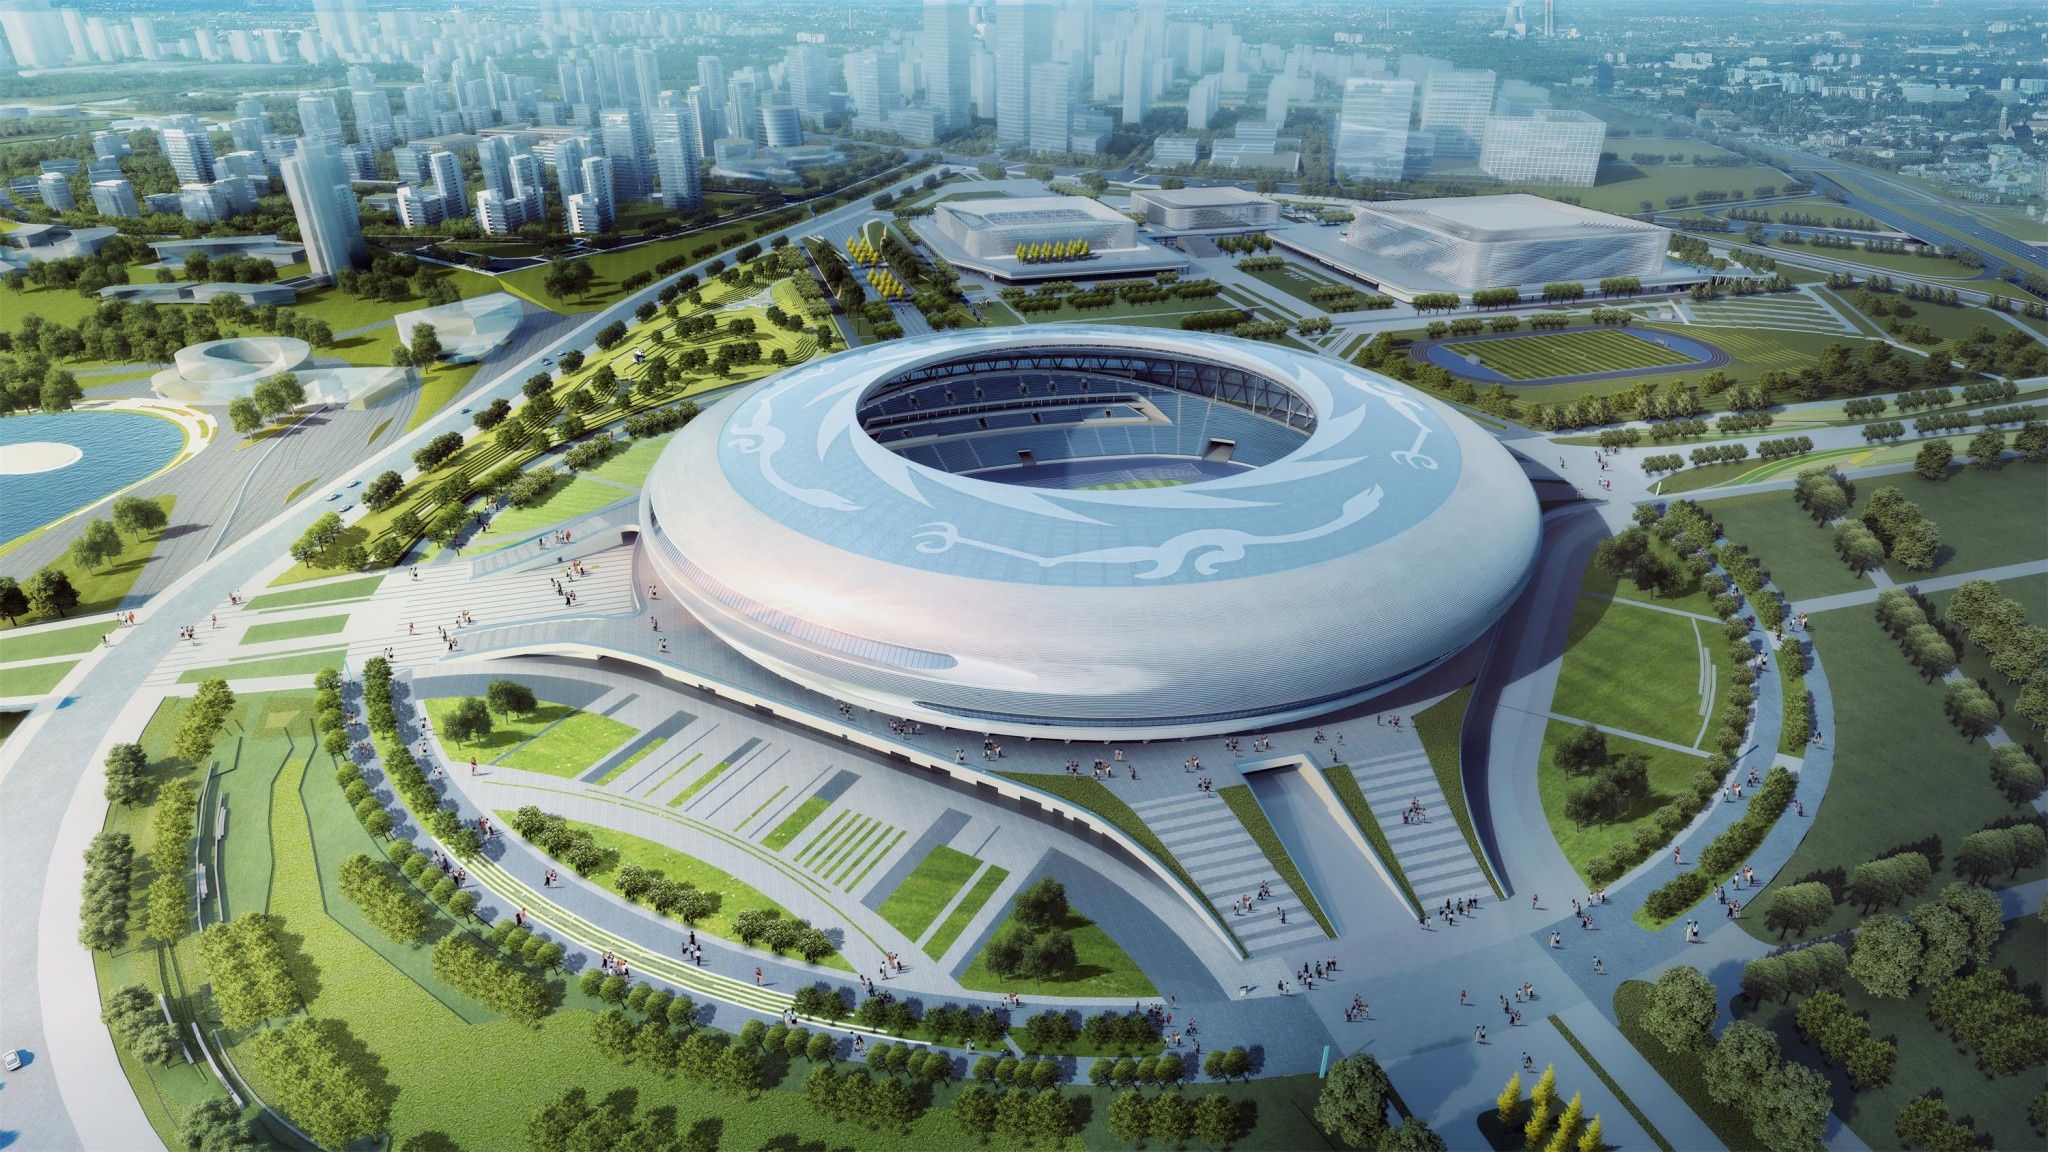 Chengdu is set to host the 2021 Summer World University Games ©Chengdu 2021